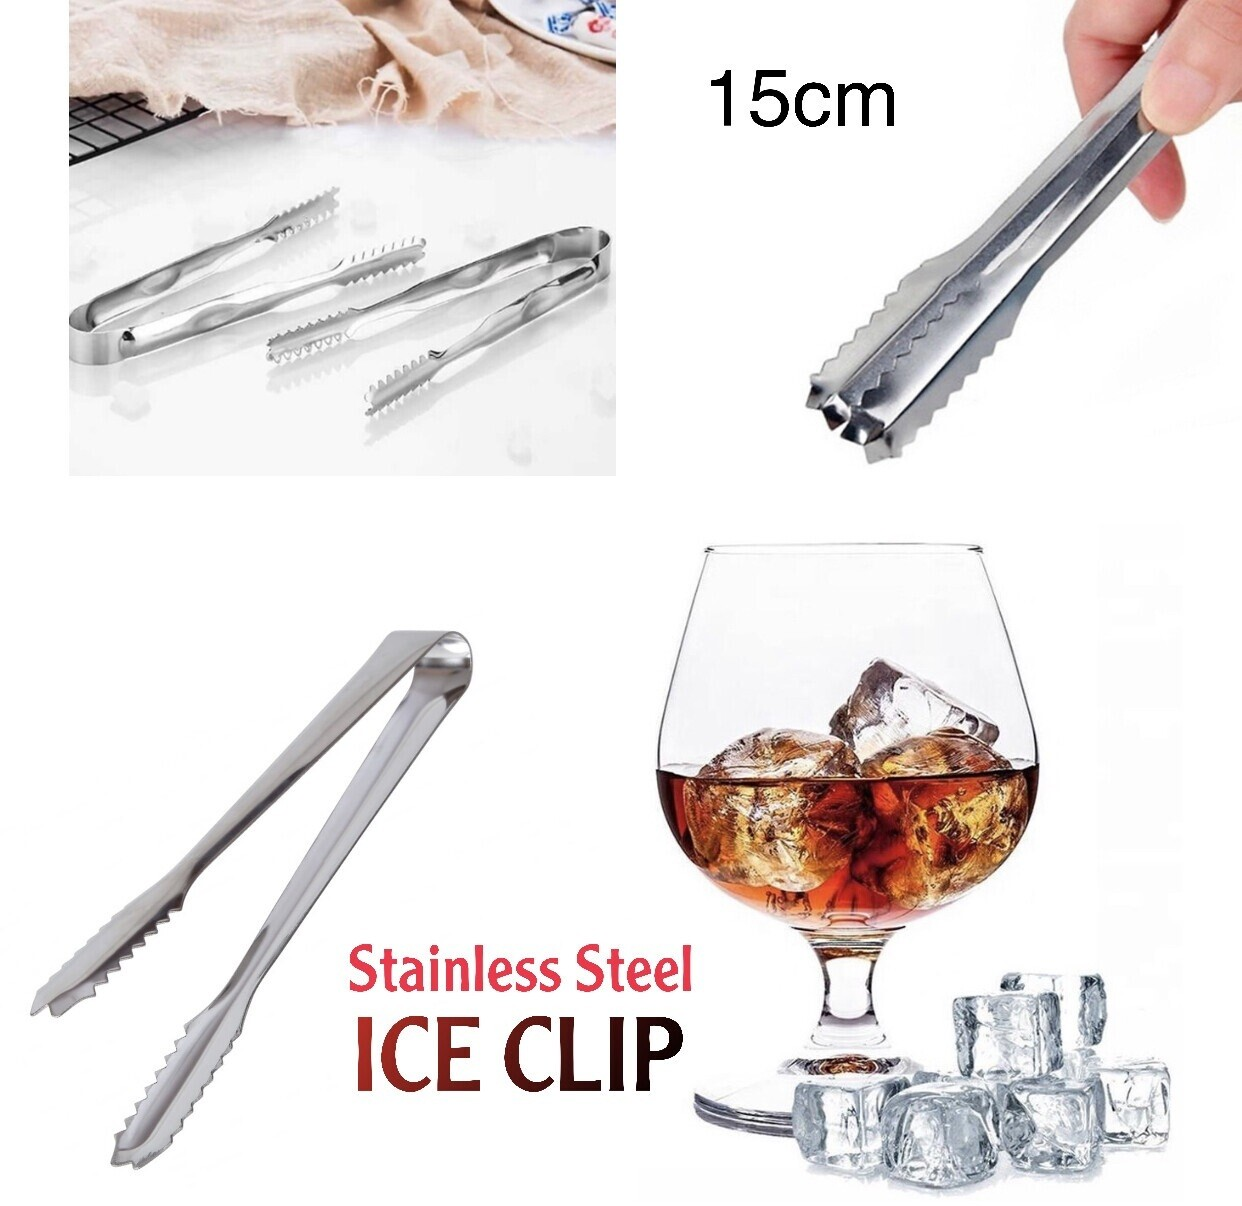 Stainless Steel Ice Clip